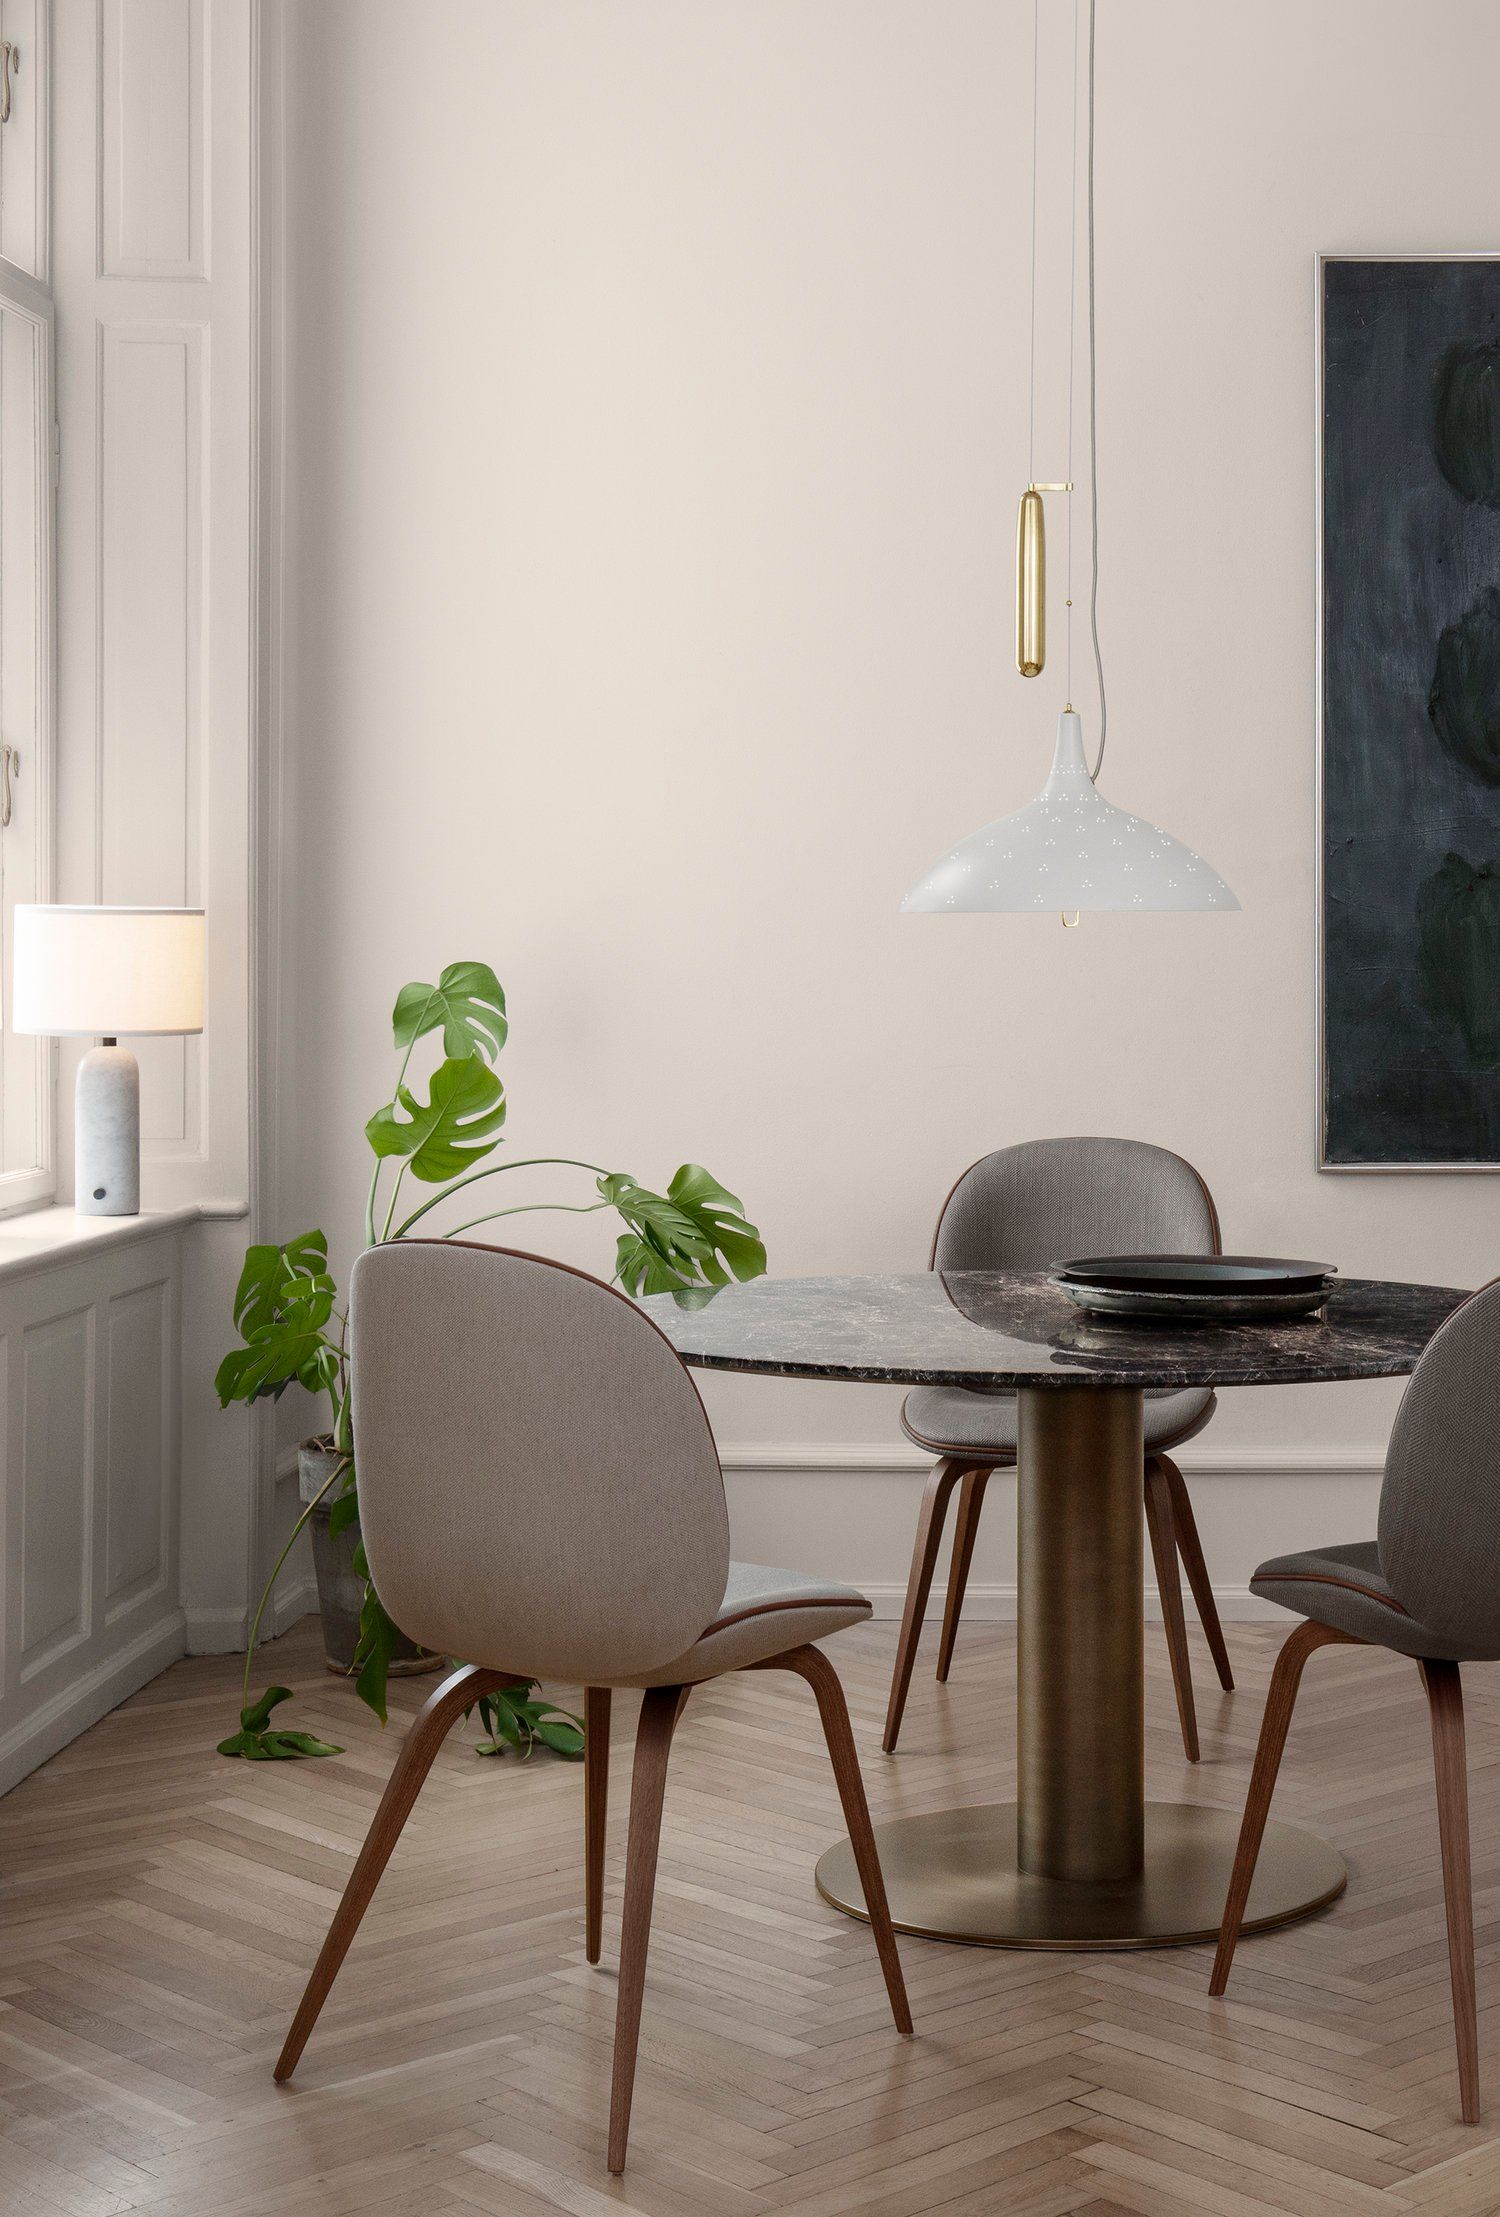 Image of: Mid Century Modern Lighting 36 Of Our Favorites Everything You Need To Know Bobby Berk